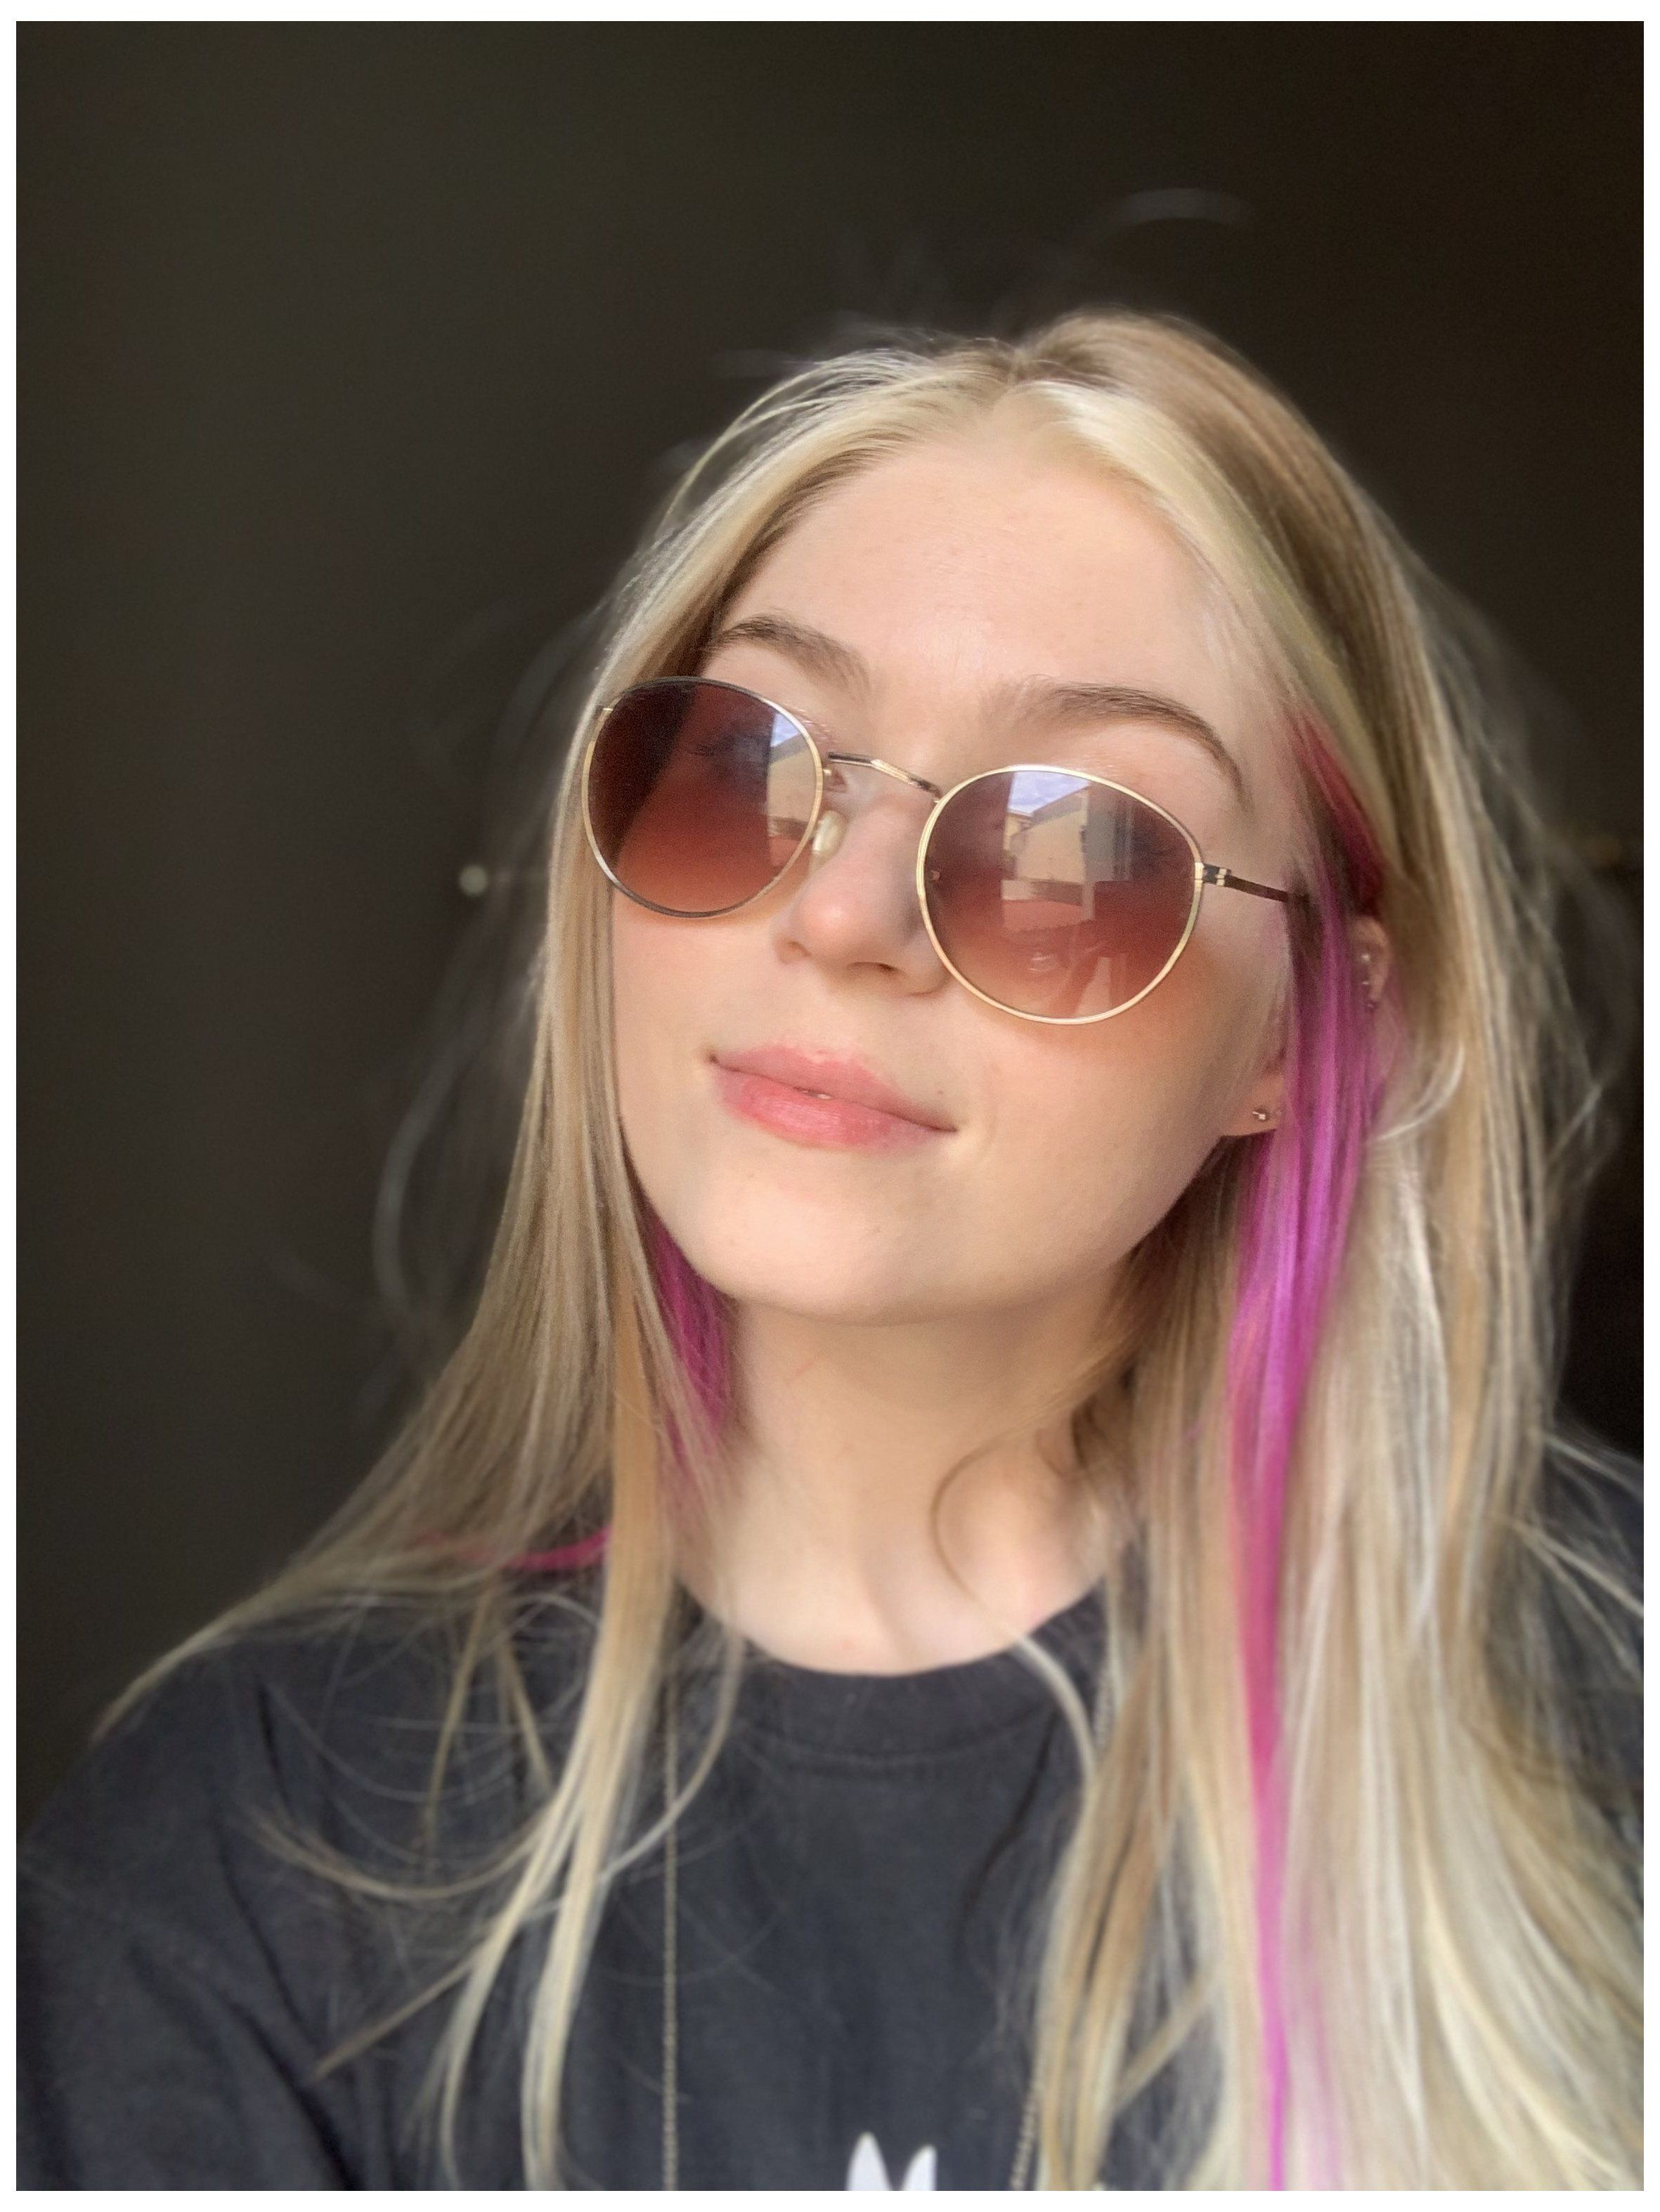 Aesthetic Hair Streak Pink Hair Streaks Marcele Bukvar Pink Hair Bleach Bit Front Hair Streak In 2020 Hair Streaks Blonde Pink Hair Streaks Hair Color Underneath